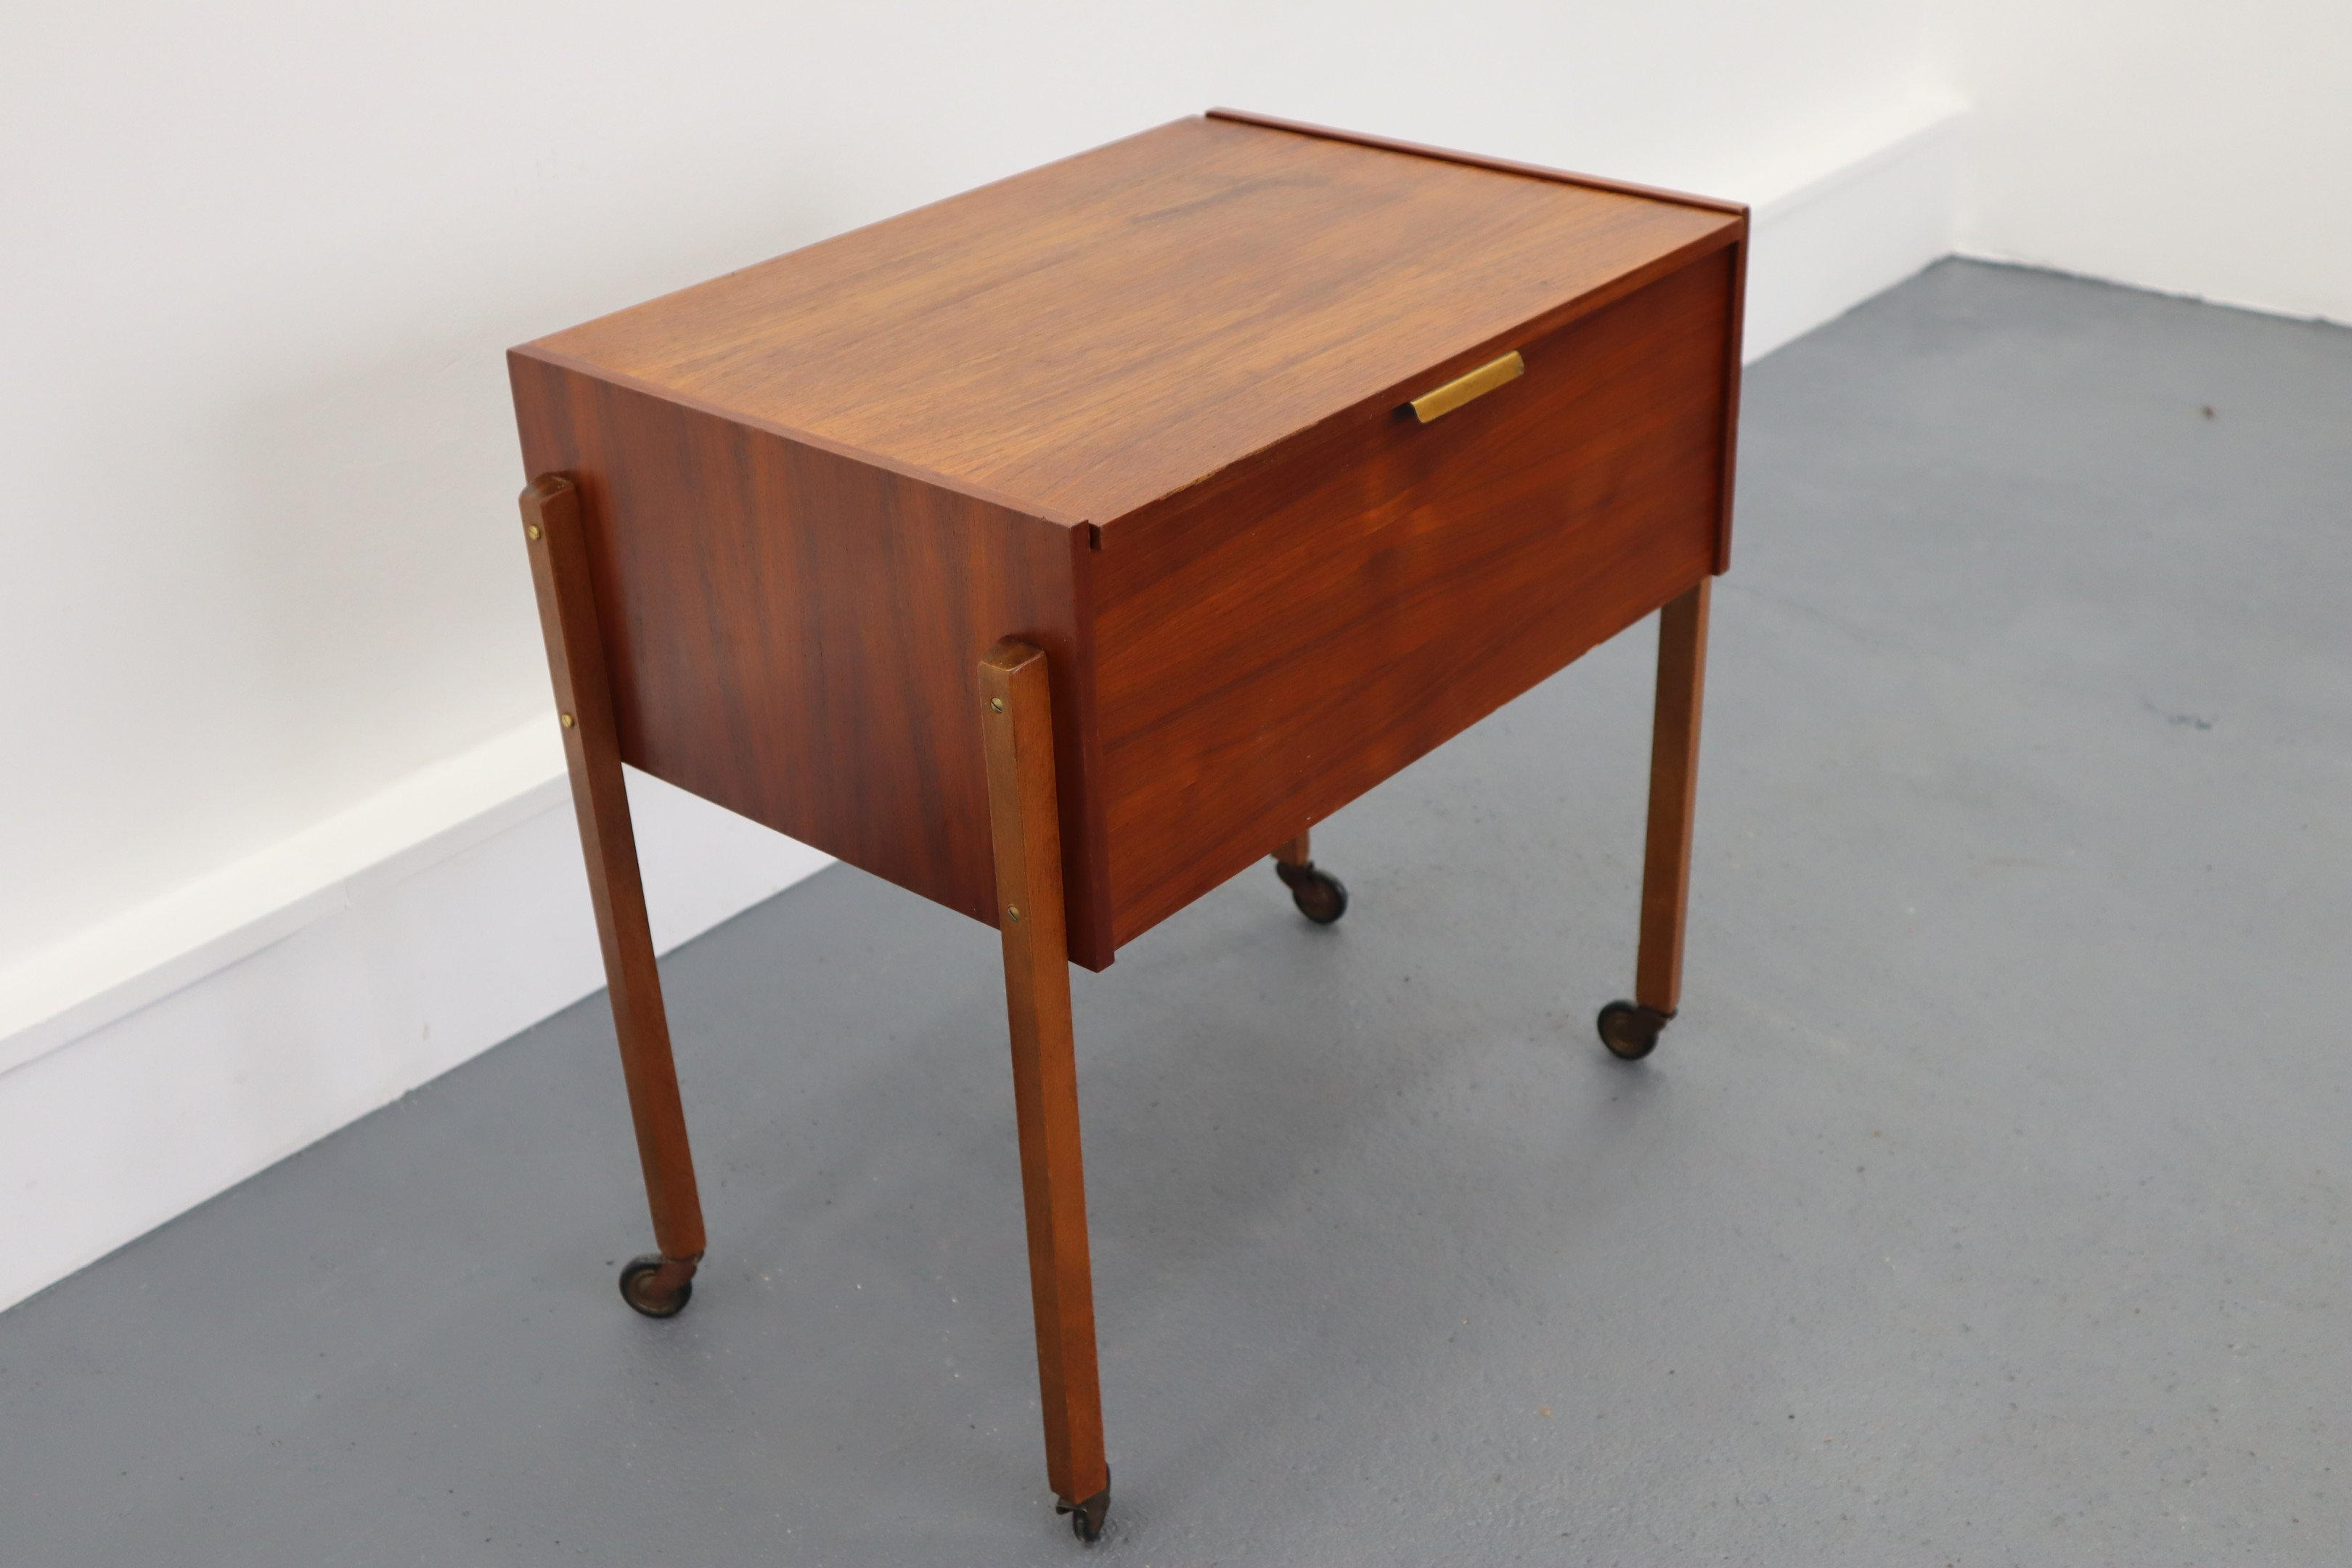 Sewing Chest, 1960s - 501020 - photo